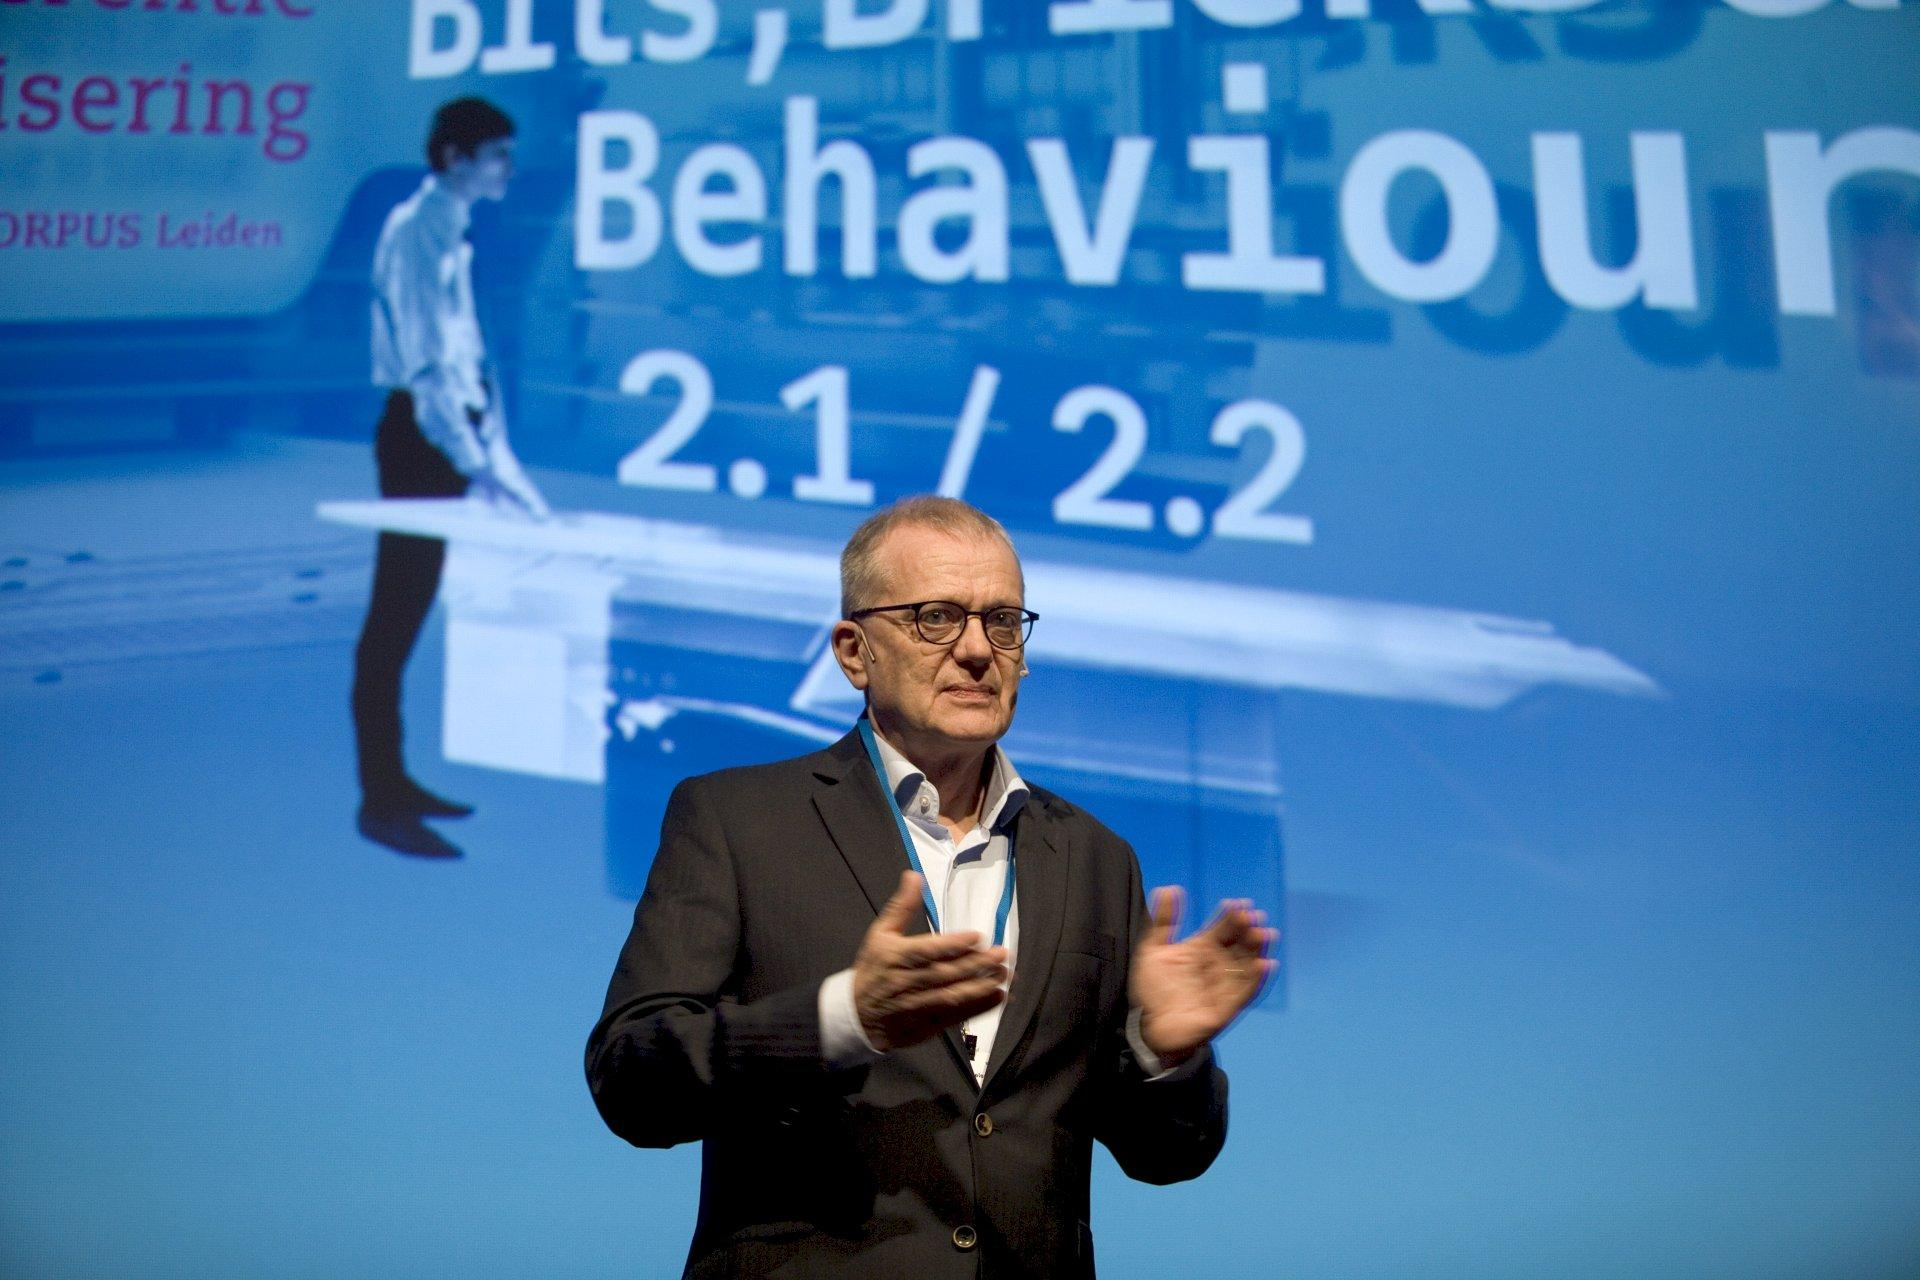 De conferentie Bits, Bricks & Behaviour